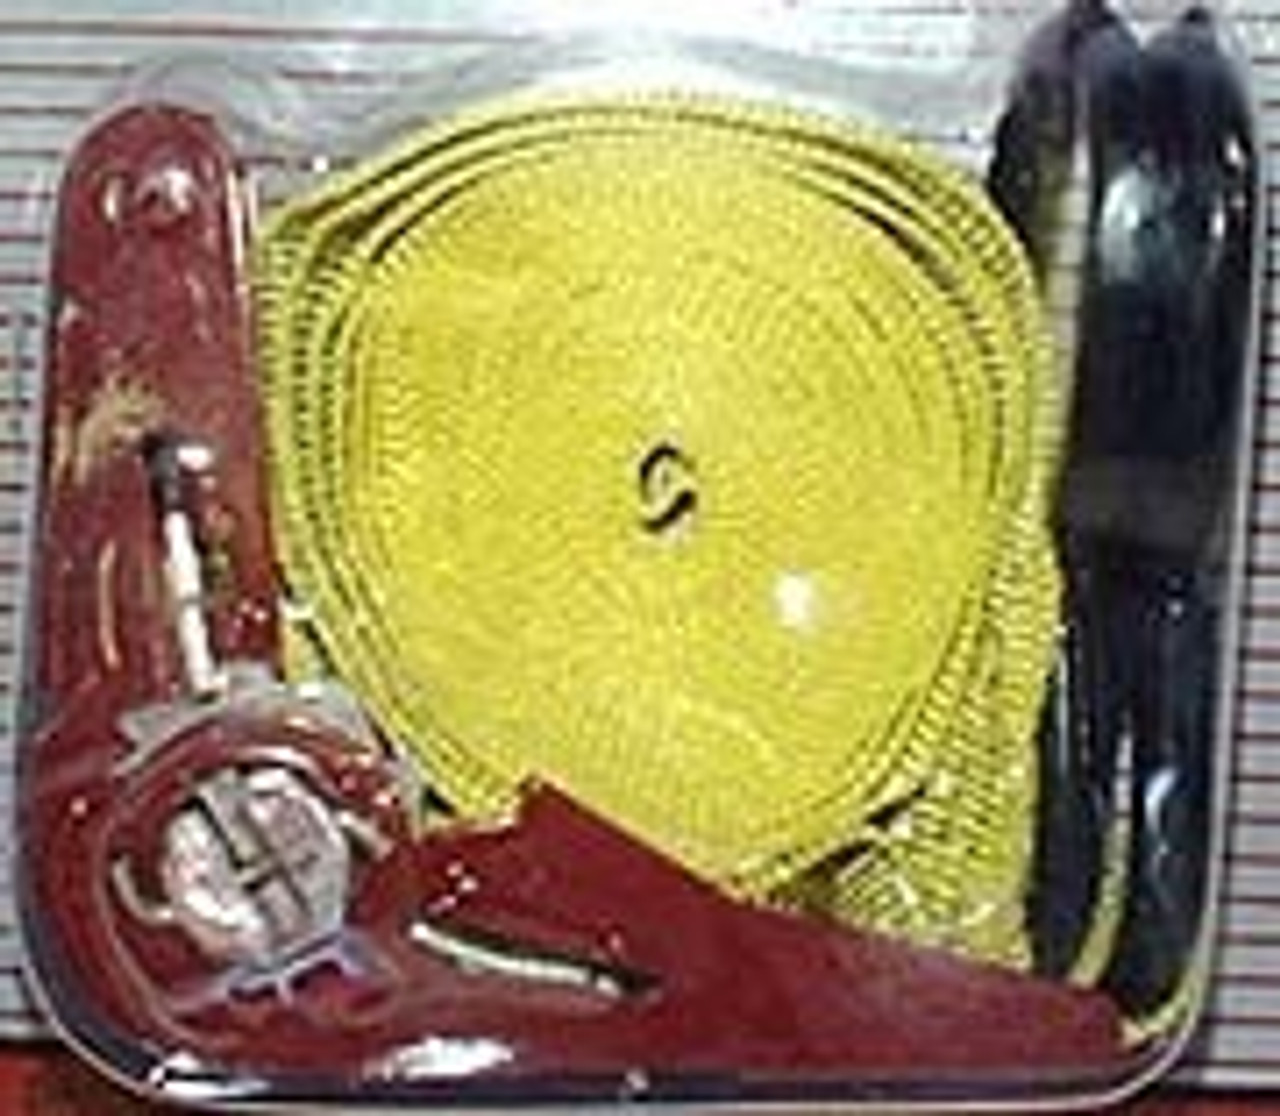 1 in. x 15 ft. Ratchet Tie Down - Heavy Duty